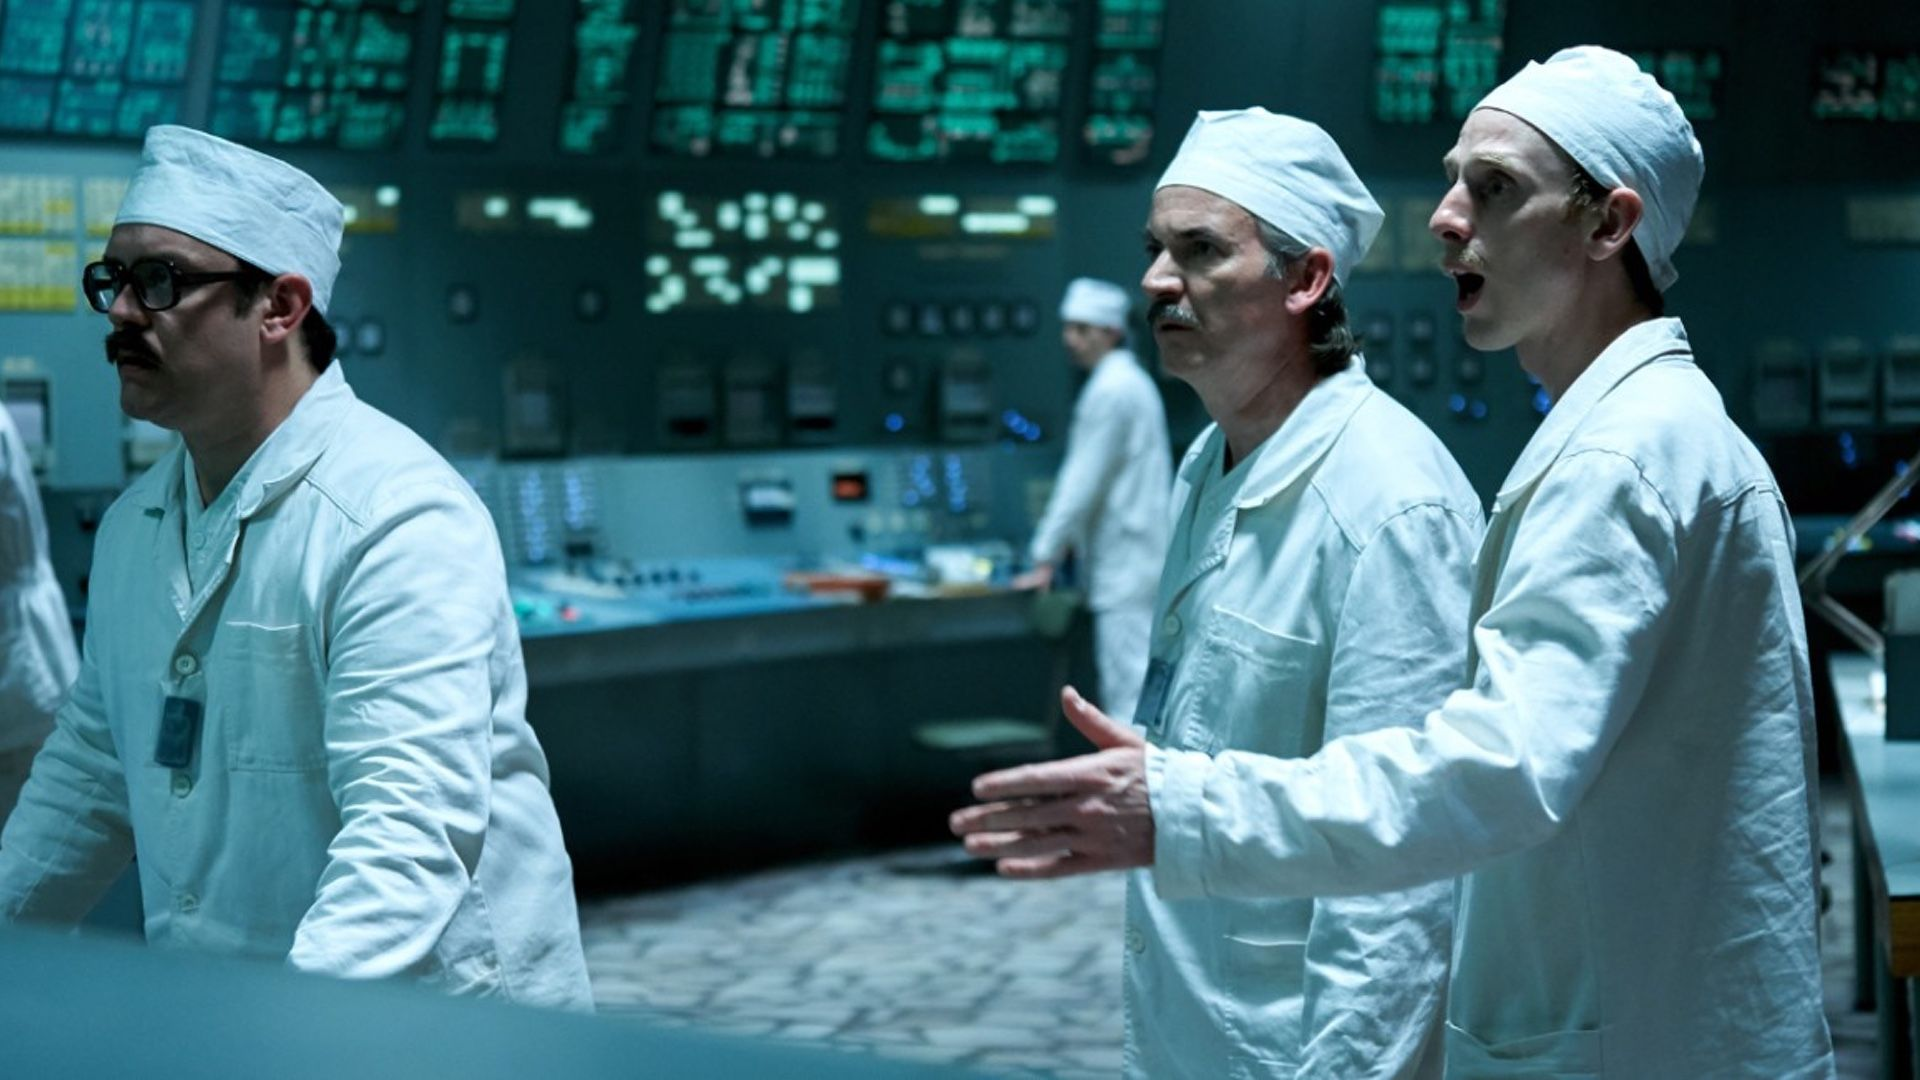 control-room-chernobyl-hbo-true-story-cast.jpg